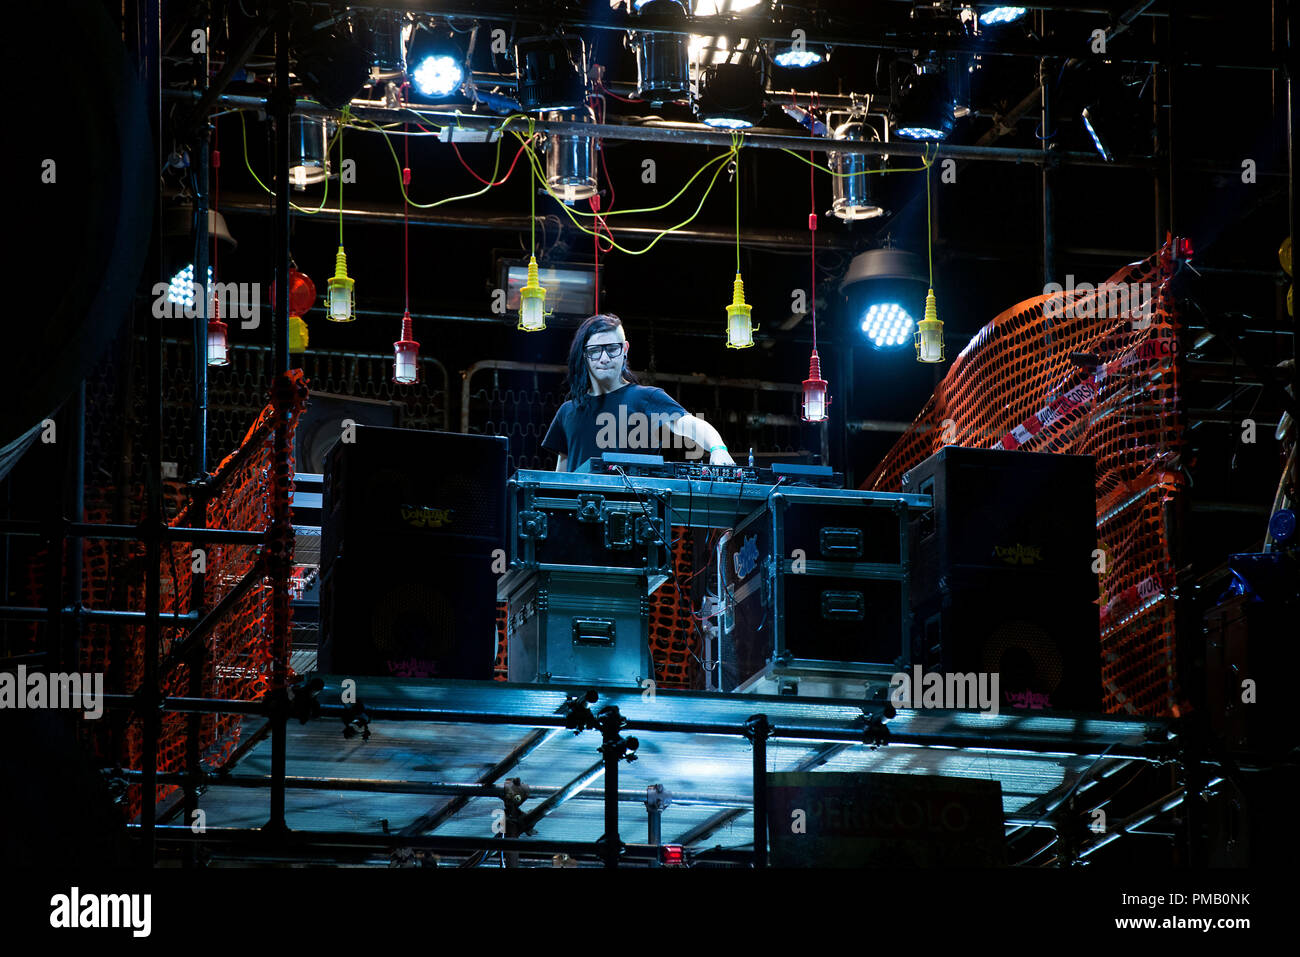 Skrillex plays 'Old and Lame Show' DJ in Zoolander 2 from Paramount Pictures. - Stock Image